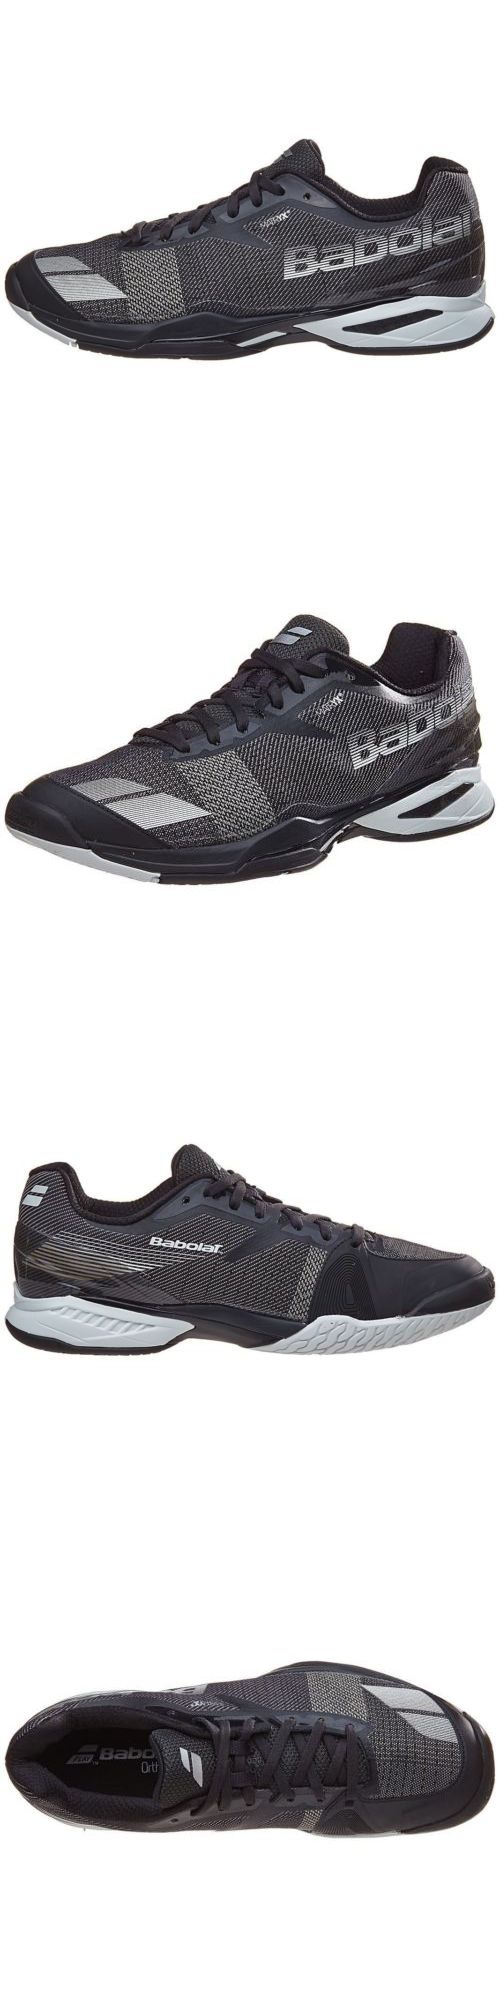 Shoes 62230: Babolat Jet All-Court Men Black White 30S17629 + Free Socks -> BUY IT NOW ONLY: $130 on eBay!